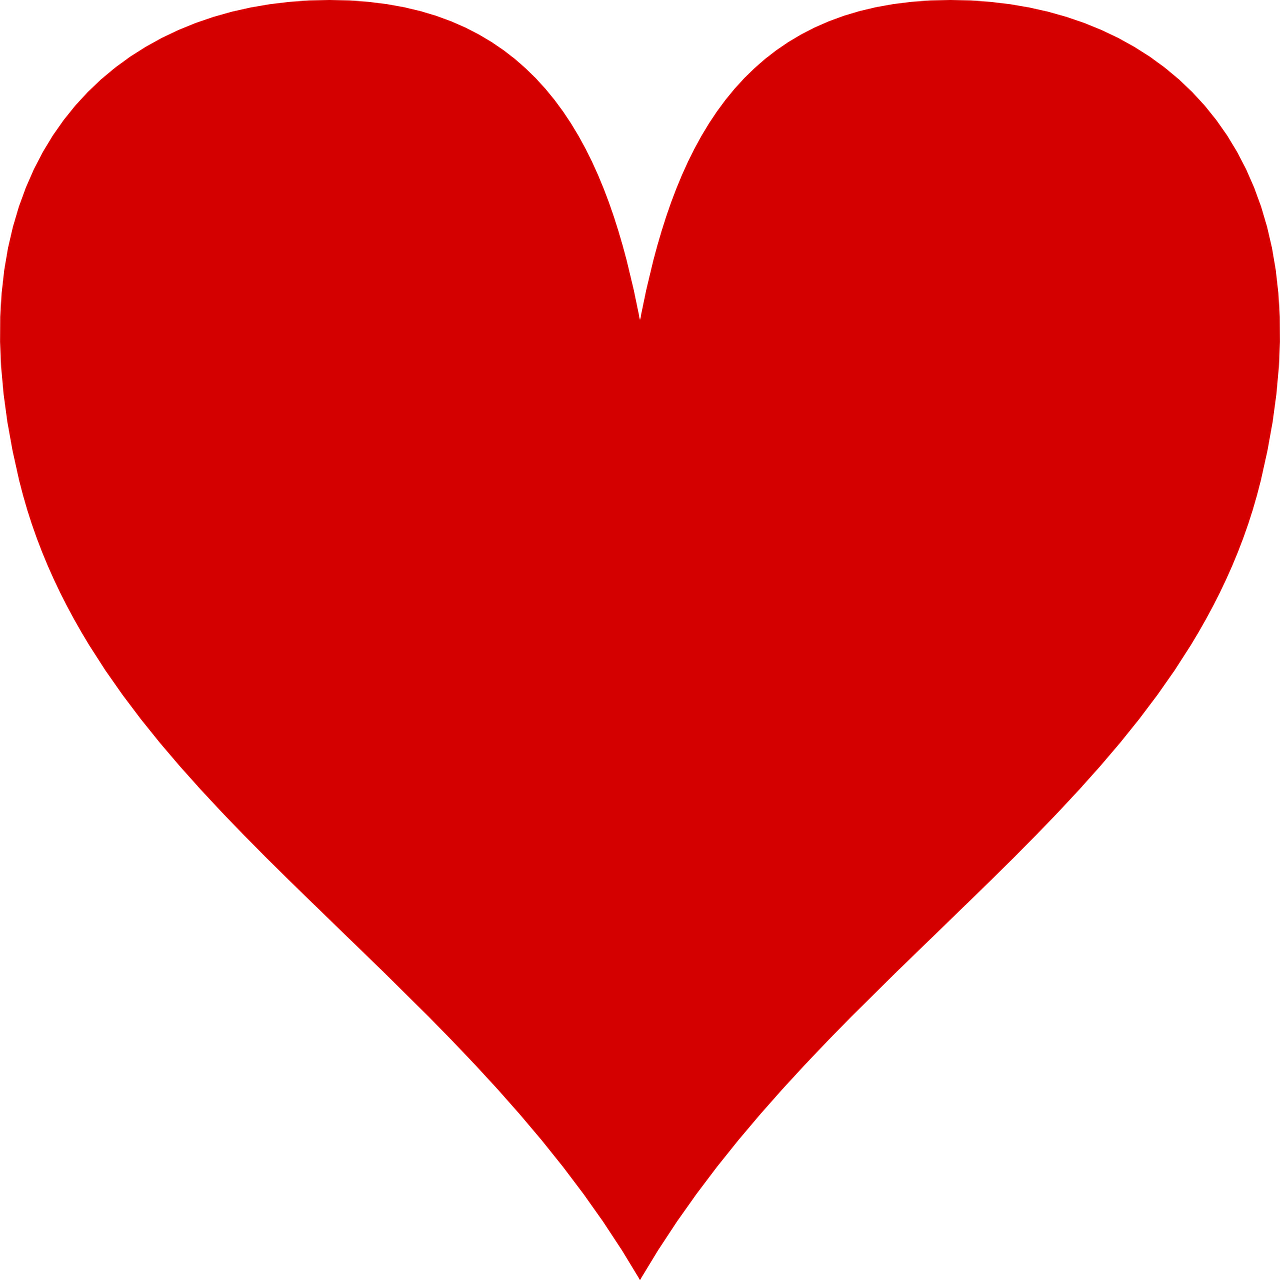 Hearts Card Shape Playing - Free vector graphic on Pixabay